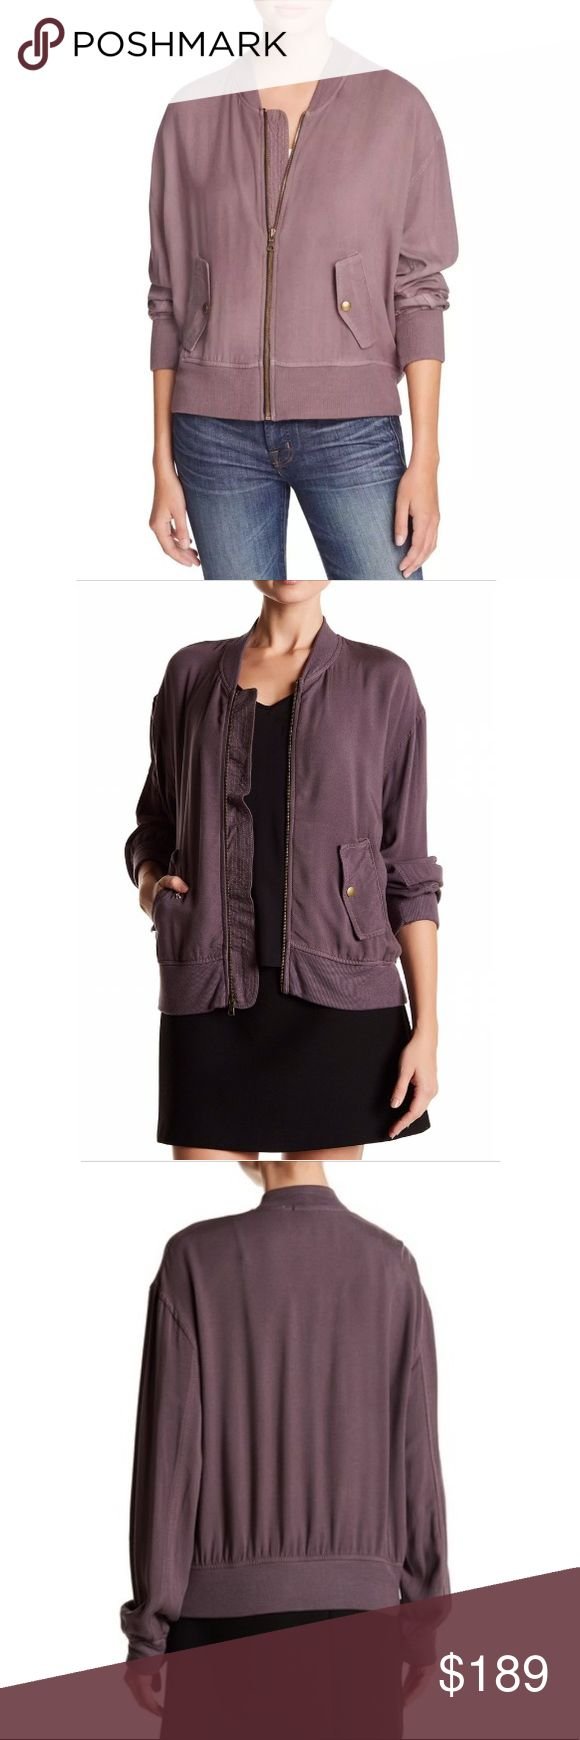 Anthropologie Purple Mauve Bomber Jacket Chic and sporty bomber jacket in a trendy hue. Might take down soon. Thinking of keeping this for myself. 🤔 First photo is in a really bright setting, and that's what the color looks like under that condition. In dimmer light, as expected of any garment, it is darker. Refer to subsequent photos. Great material and super comfy. As always, I am open to offers! Three Dots Jackets & Coats Utility Jackets